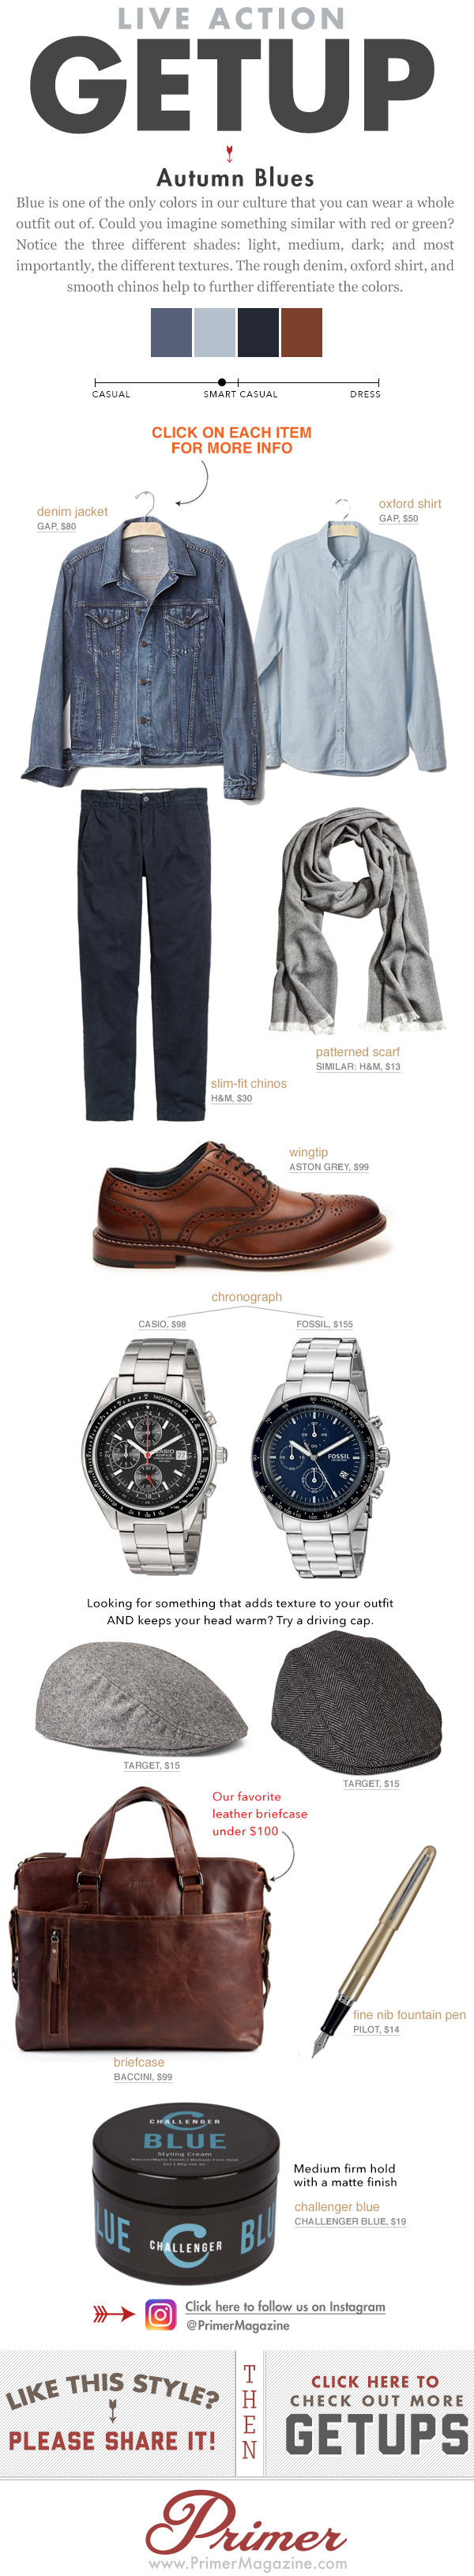 Fall outfit inspiration - The Getup - Autumn Blues